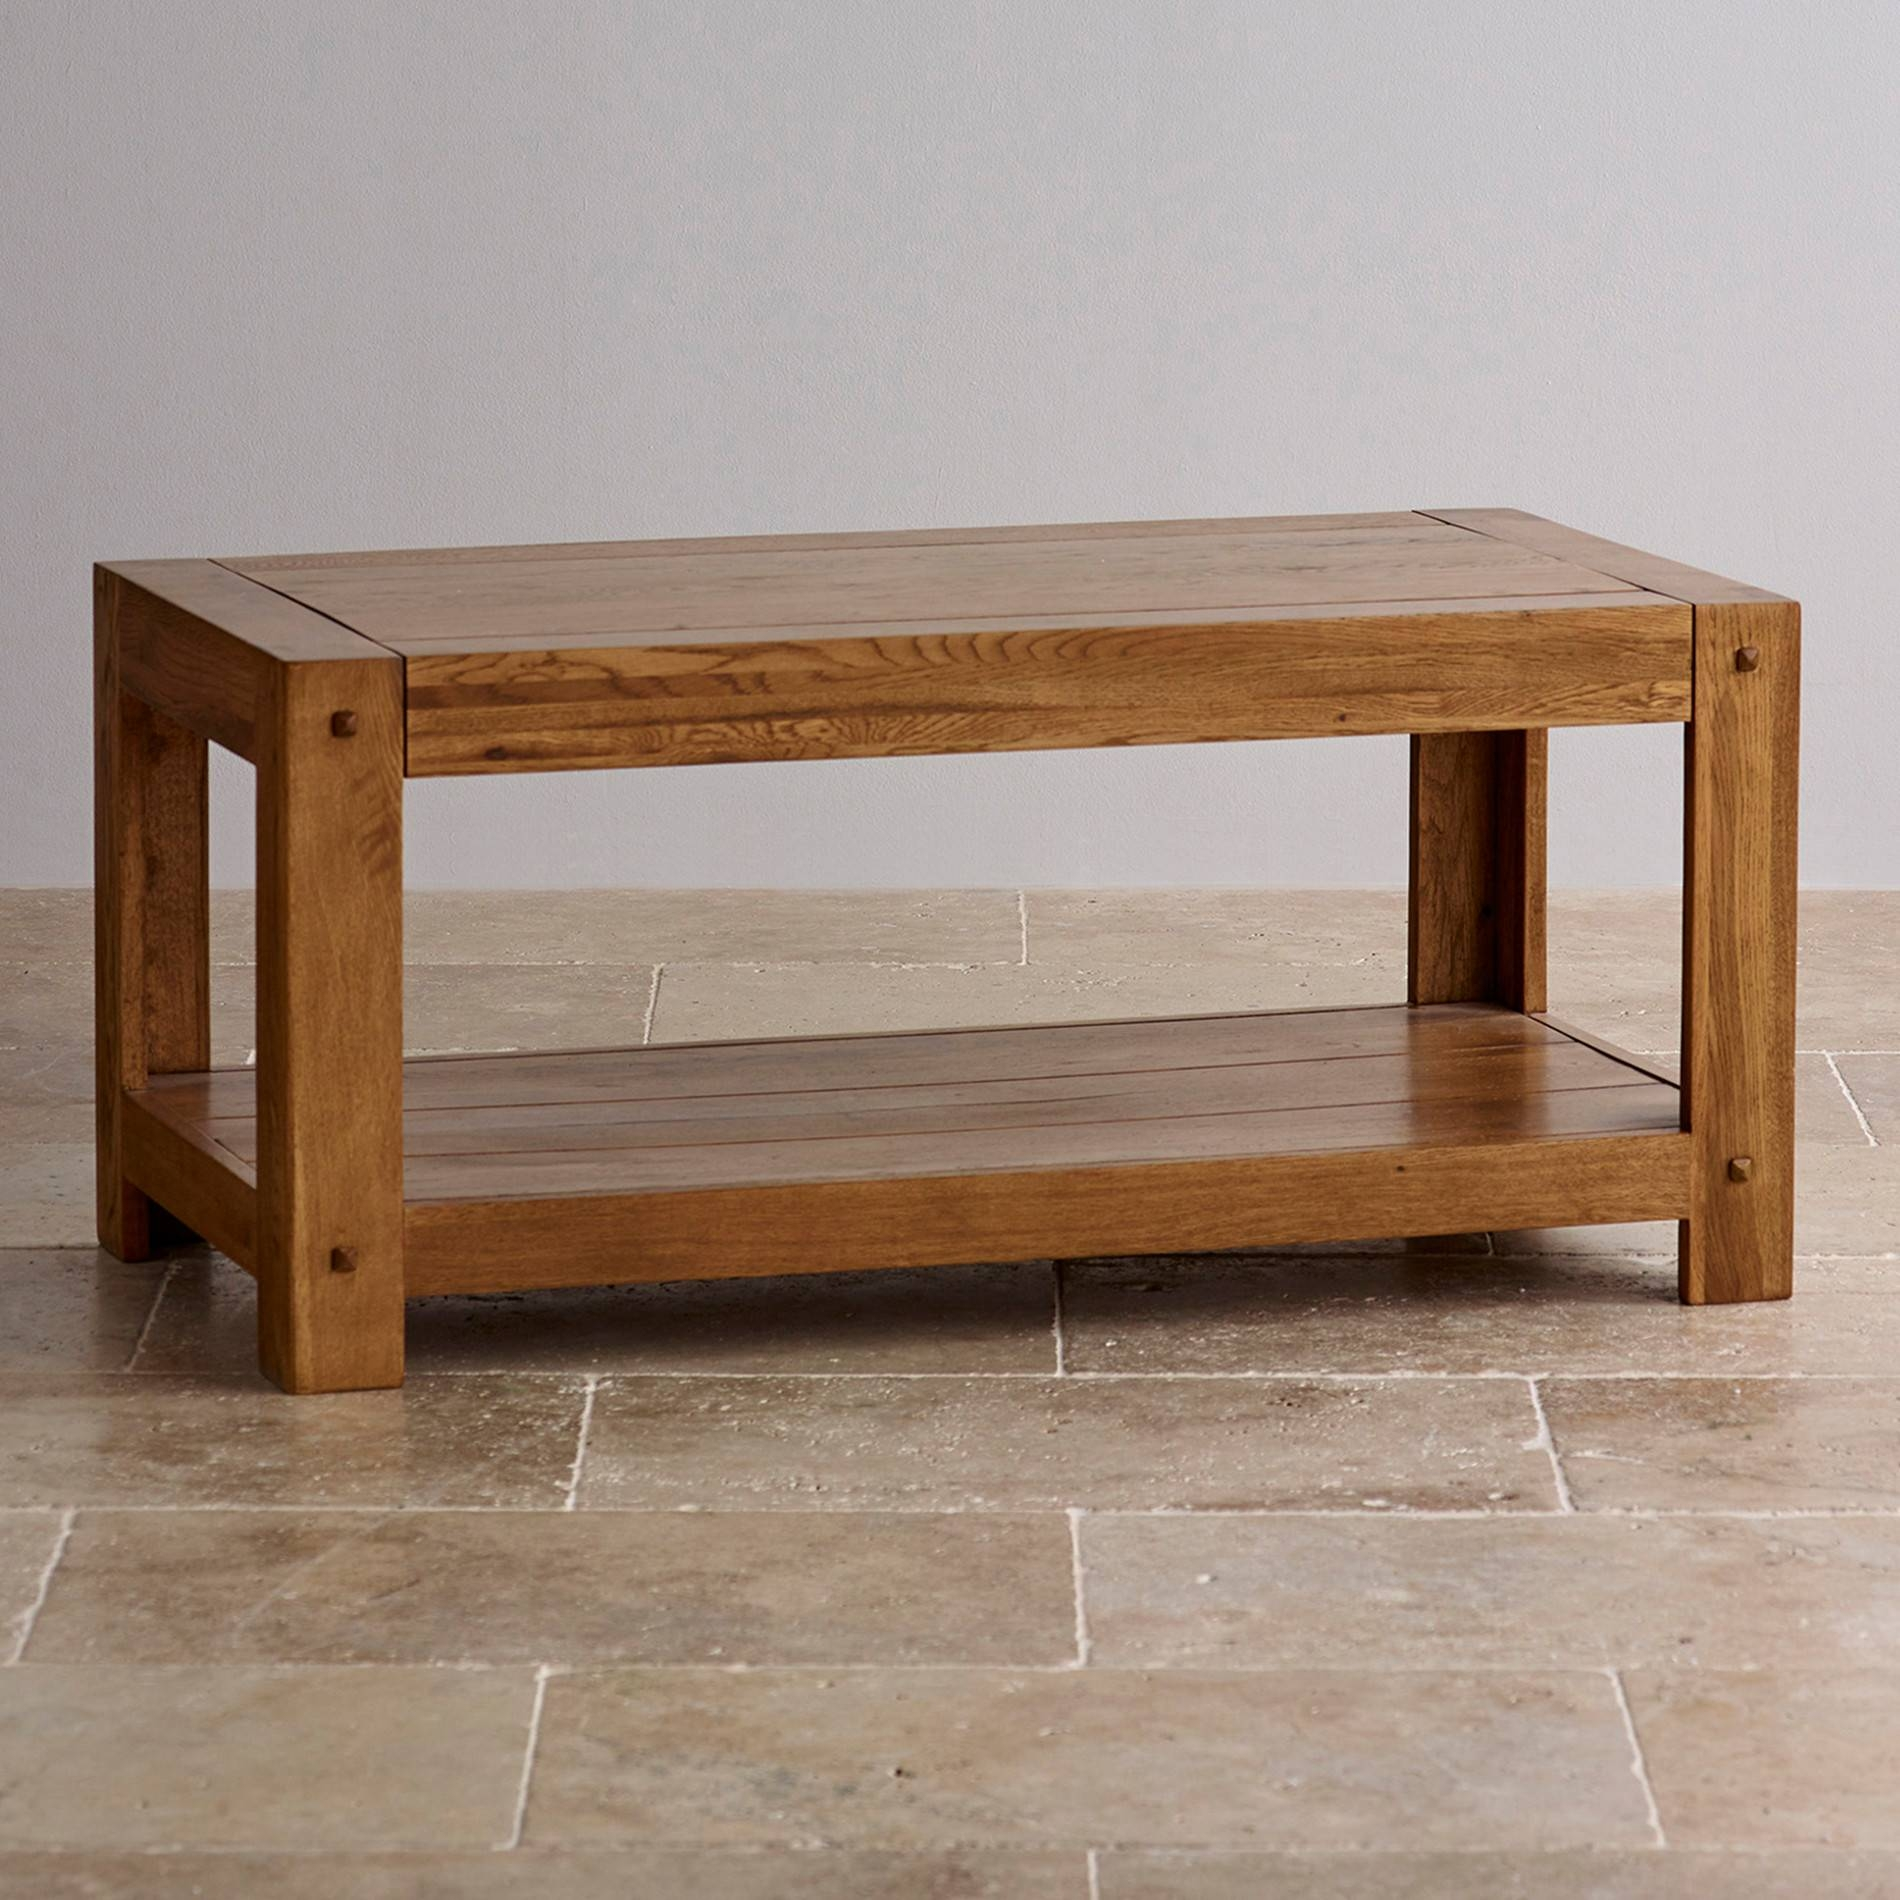 Quercus Coffee Table In Rustic Solid Oak | Oak Furniture Land within Oak Wood Coffee Tables (Image 12 of 15)